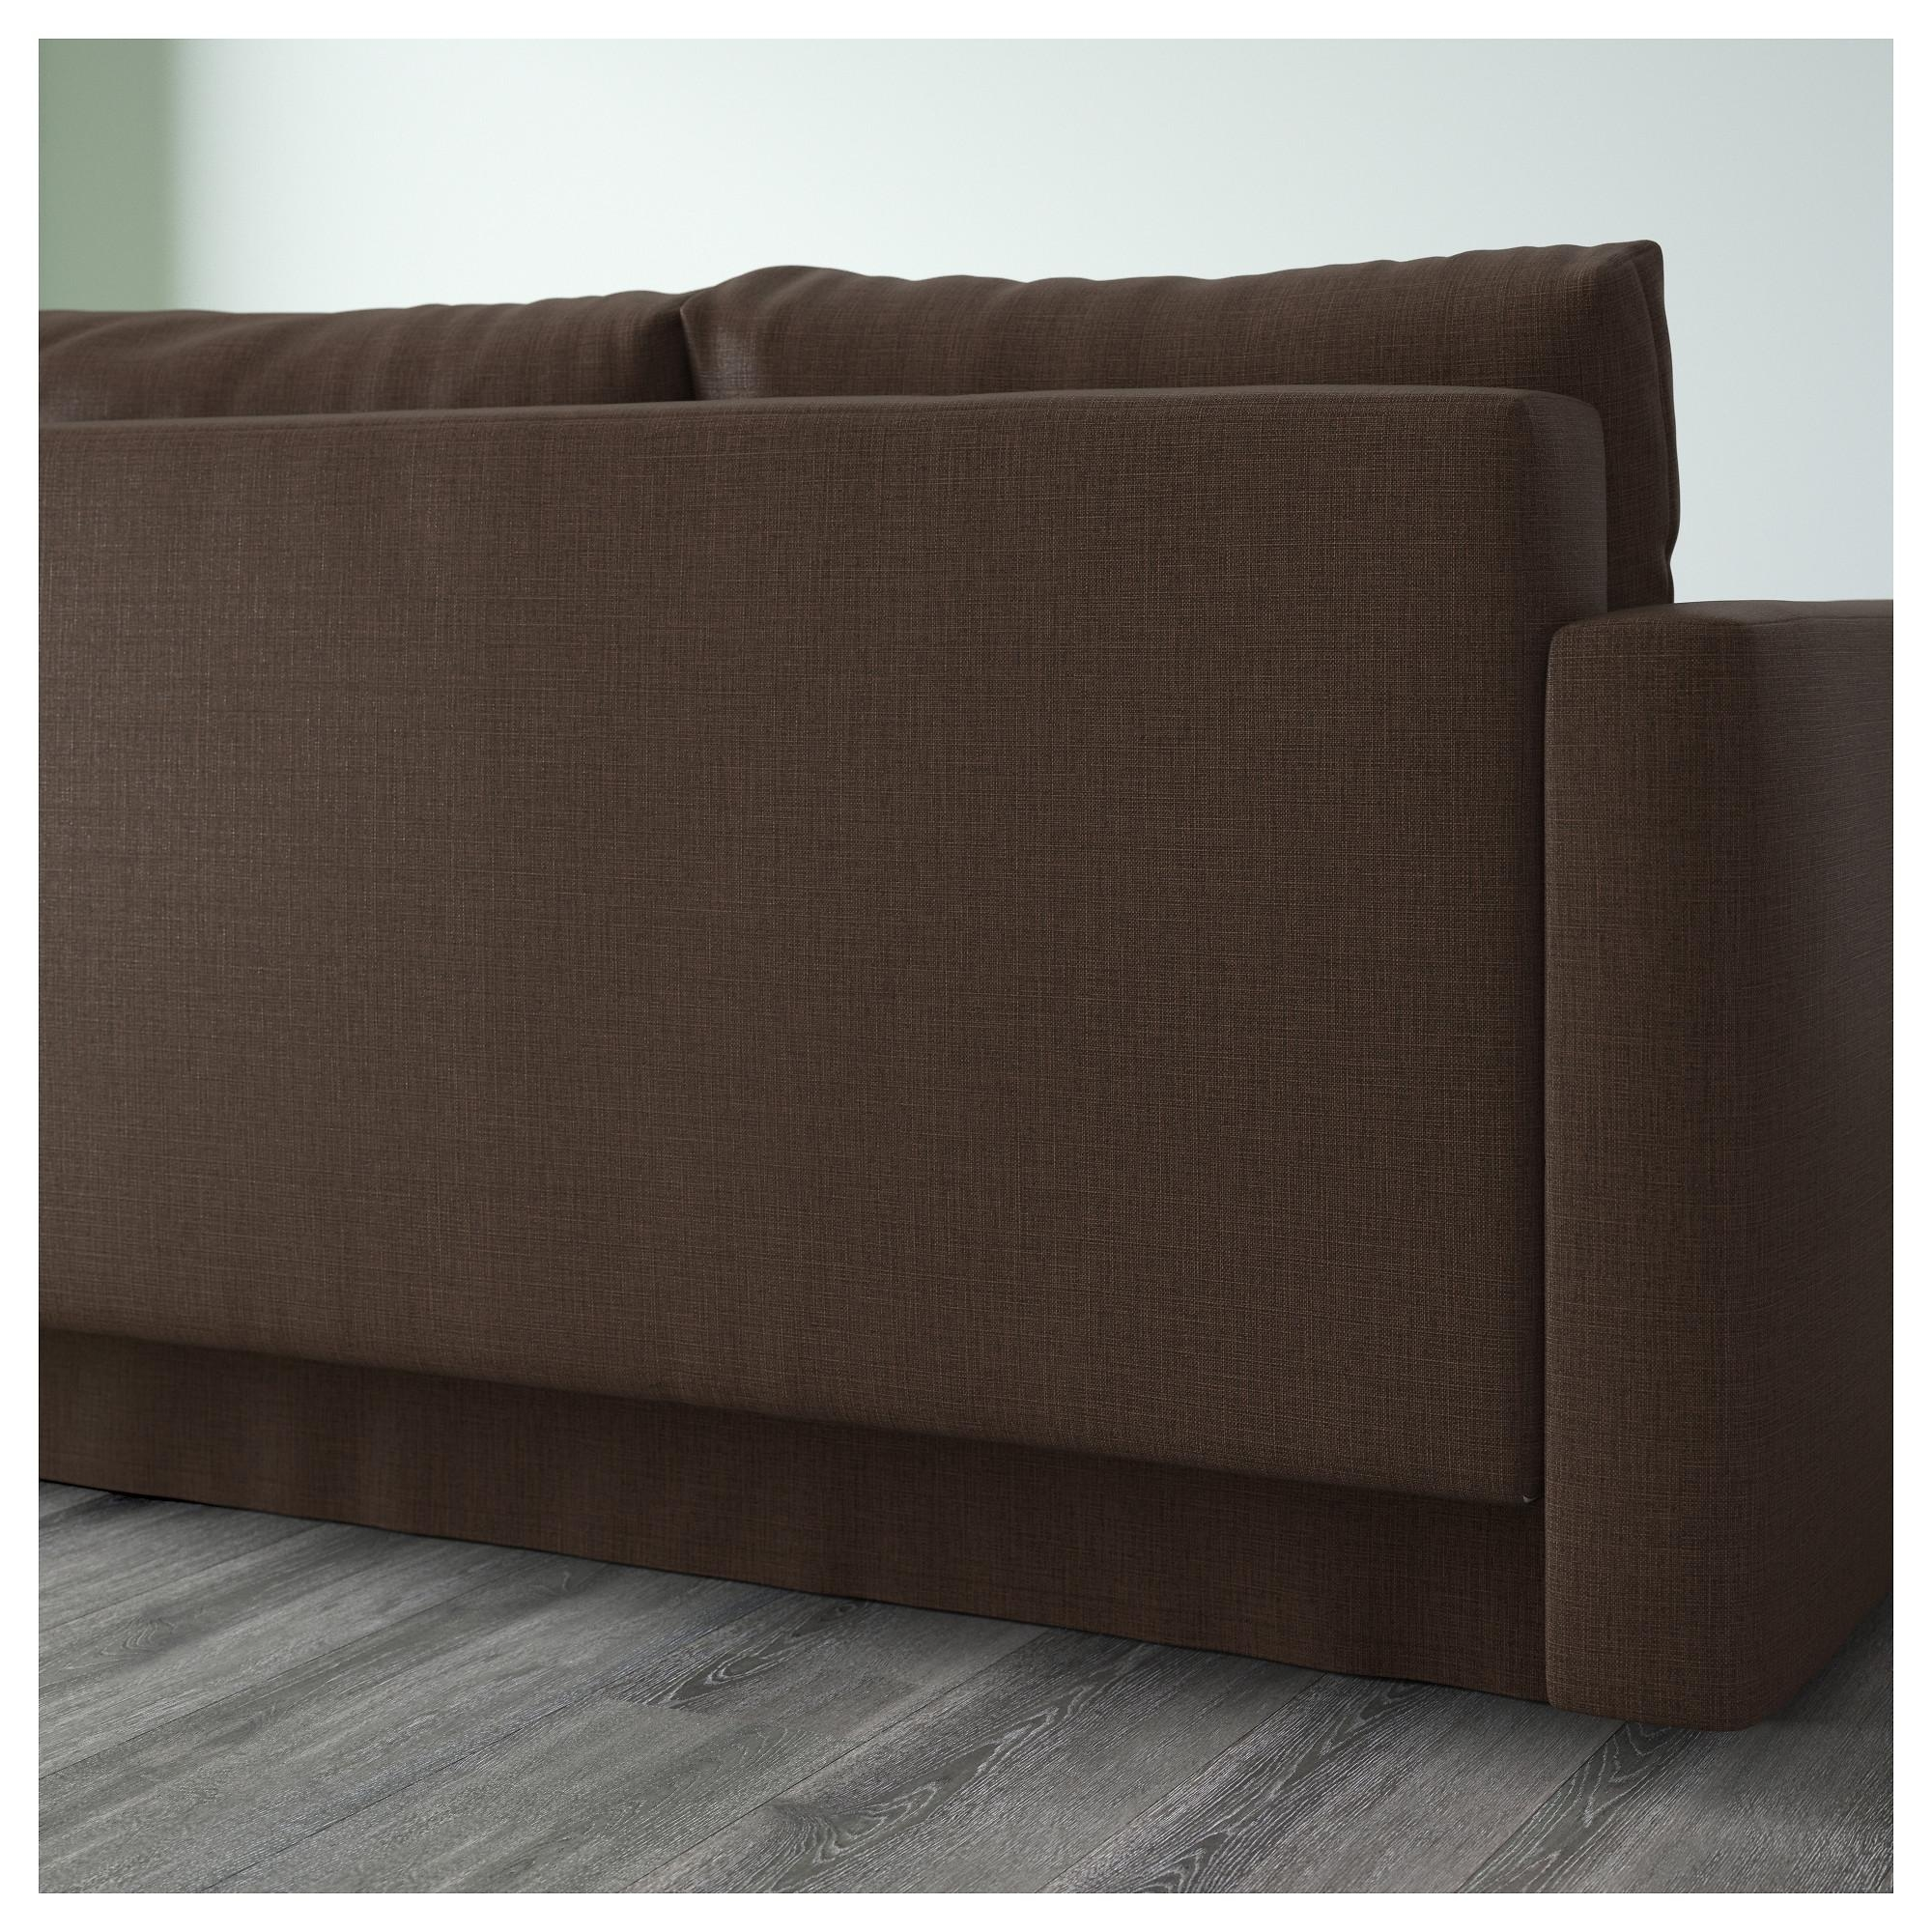 Friheten Corner Sofa Bed With Storage Skiftebo Brown – Ikea With Storage Sofas Ikea (Image 9 of 20)